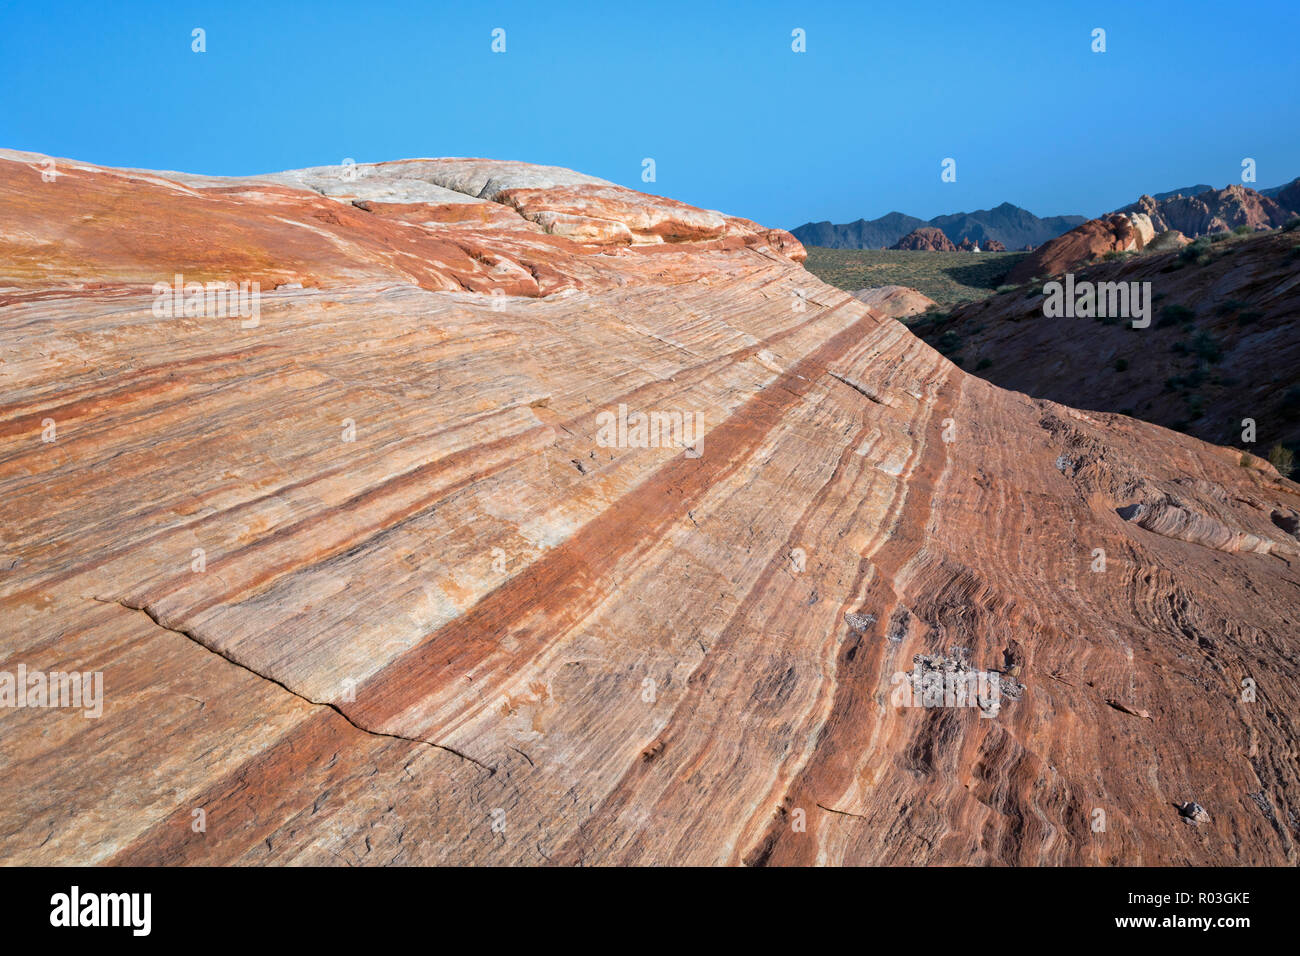 NV00071-00...NEVADA - Contrasting layers of sandstone near The Fire Wave  in the Valley of Fire State Park. - Stock Image